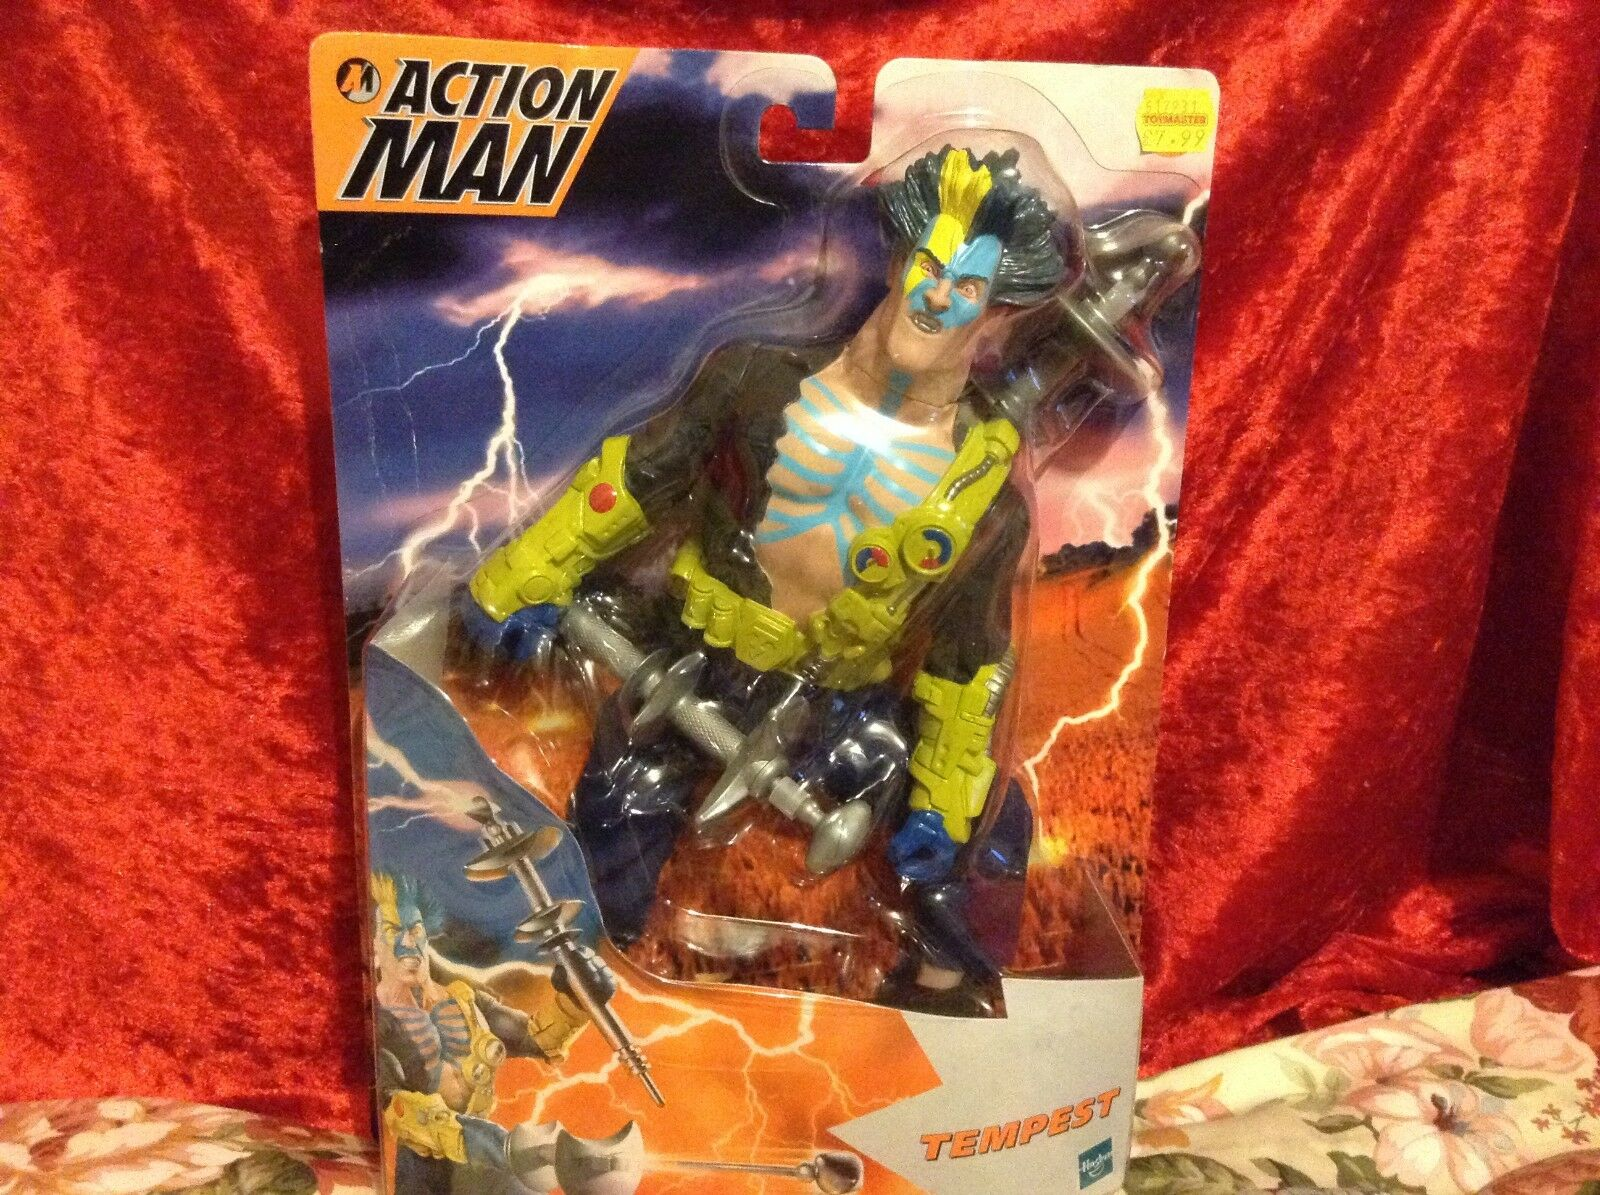 RARE ACTION MAN Tempest, BRAND NEW, BOXED, Released in 2000, Hasbro